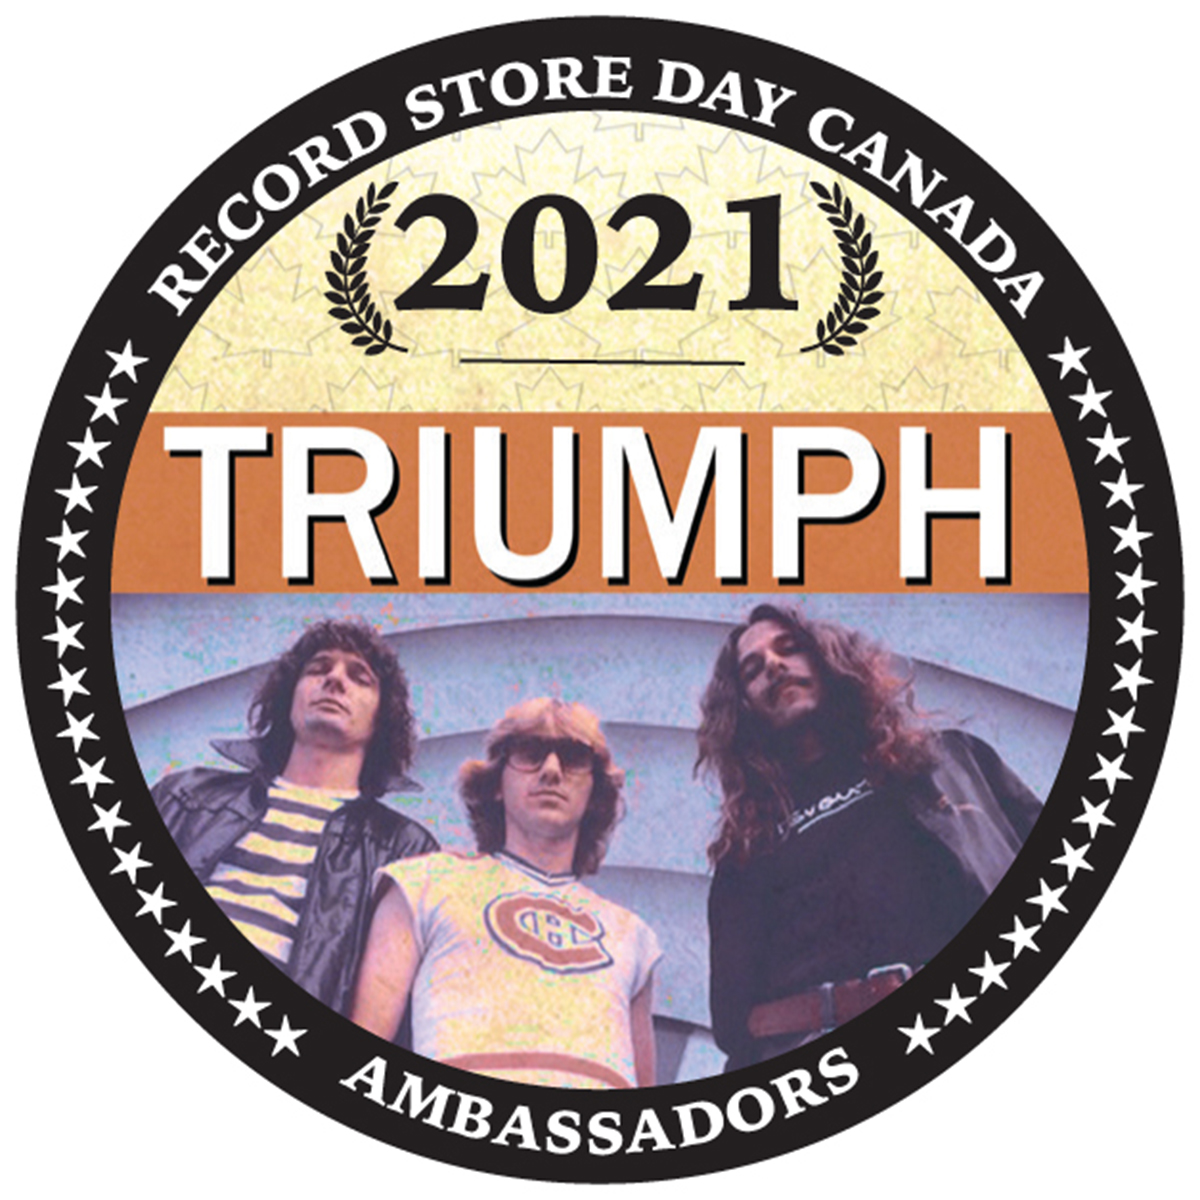 Record Store Day Announces Canadian Ambassadors TRIUMPH To Release RSD Exclusive 40th Anniversary of ALLIED FORCES June 12